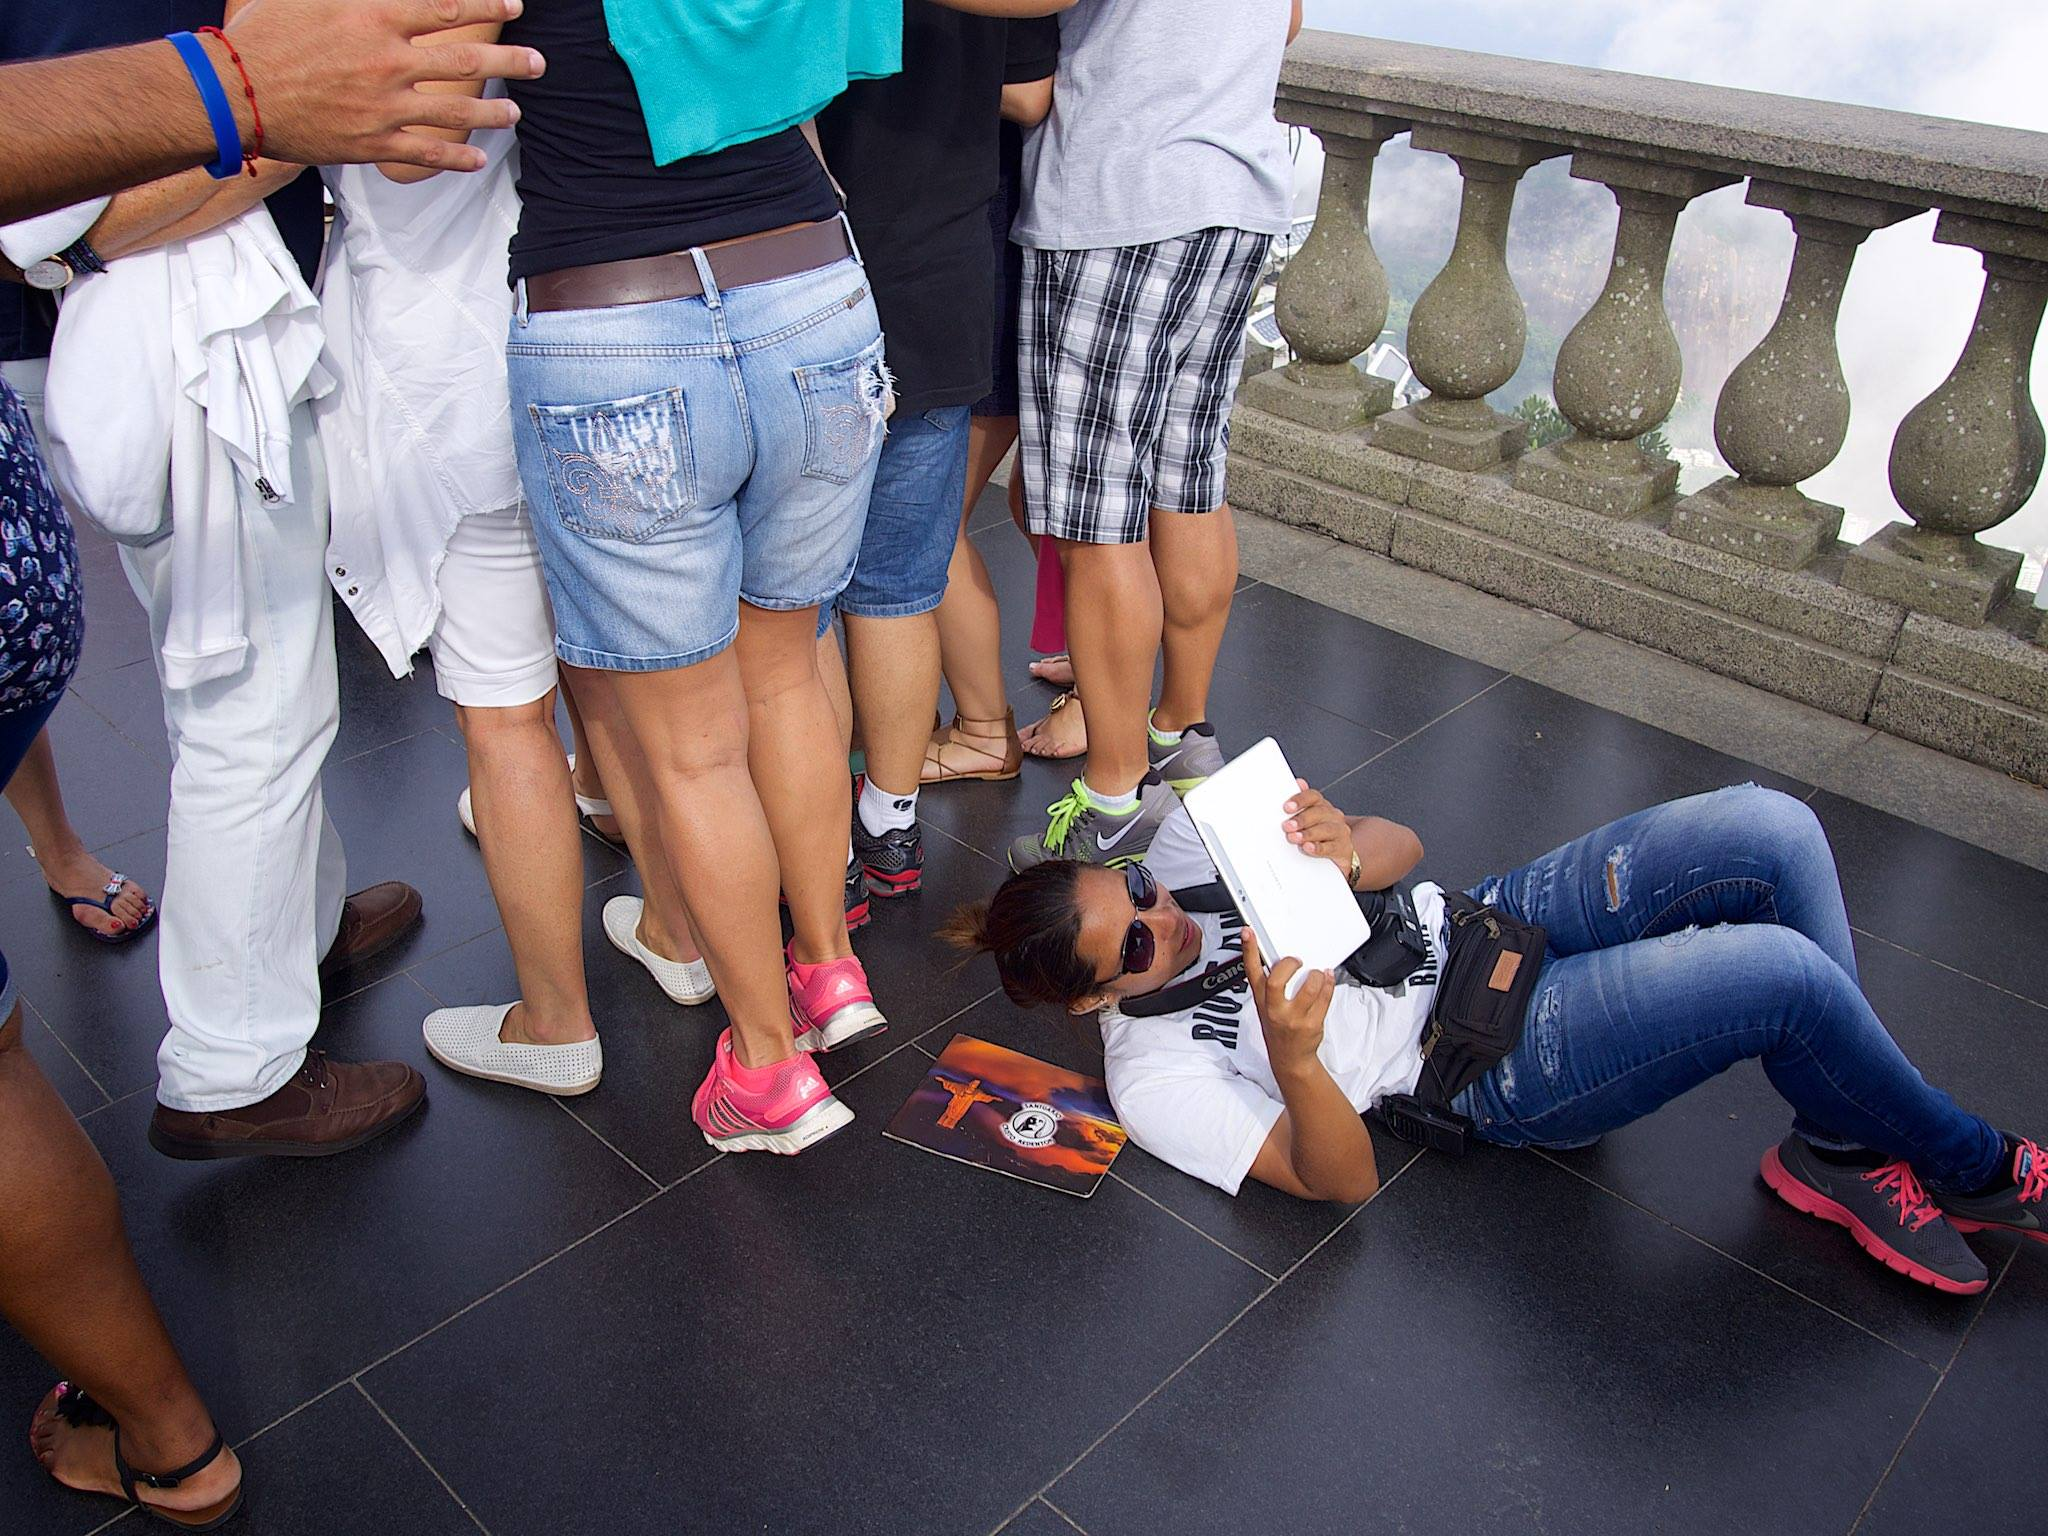 A tourist attempting to get a good shot of Christ the Redeemer